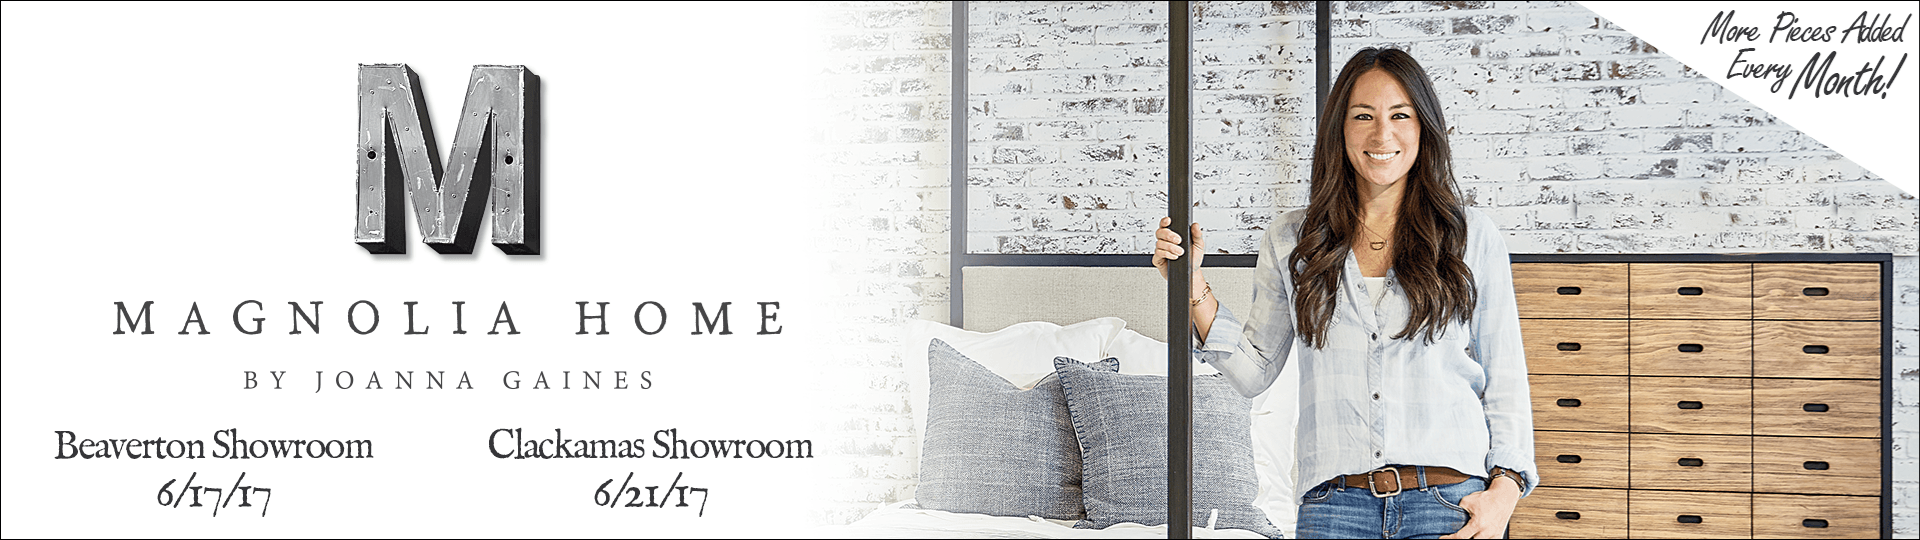 Magnolia Home by Joanna Gaines Now on Display